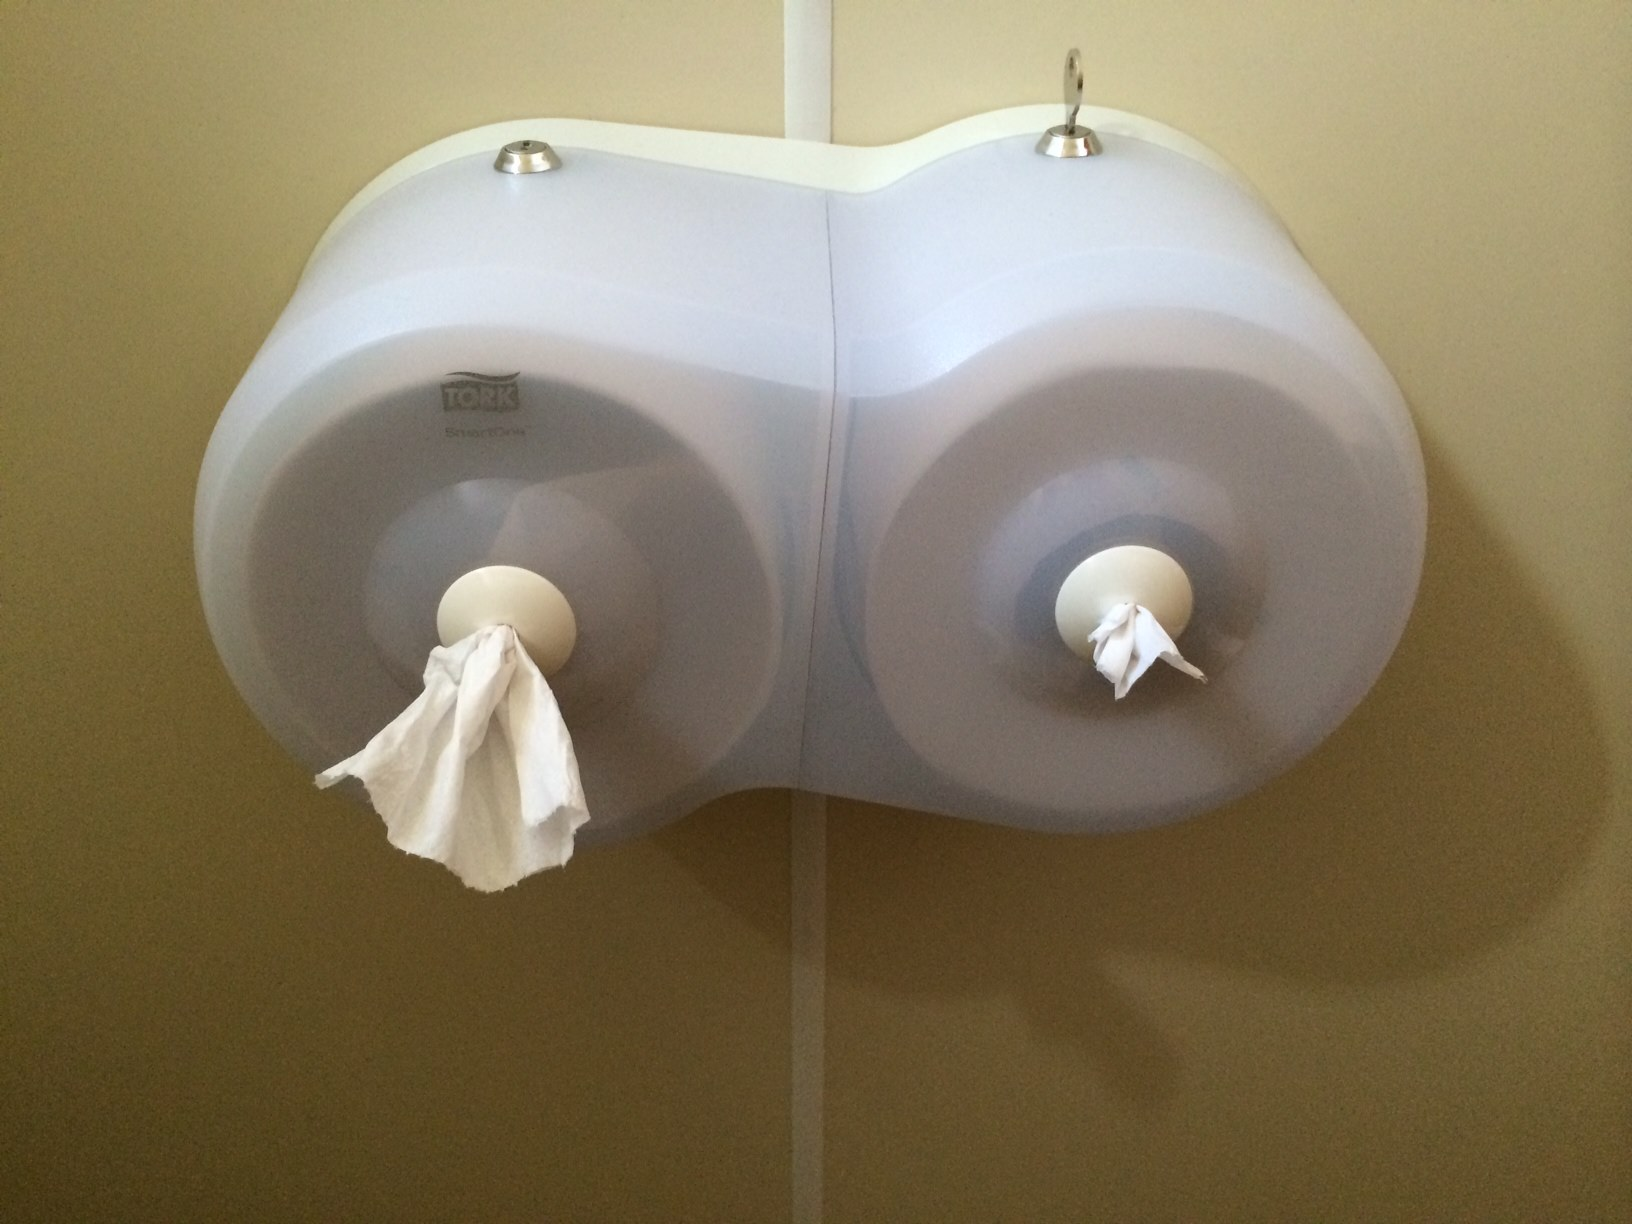 Very boob-like toilet paper dispenser